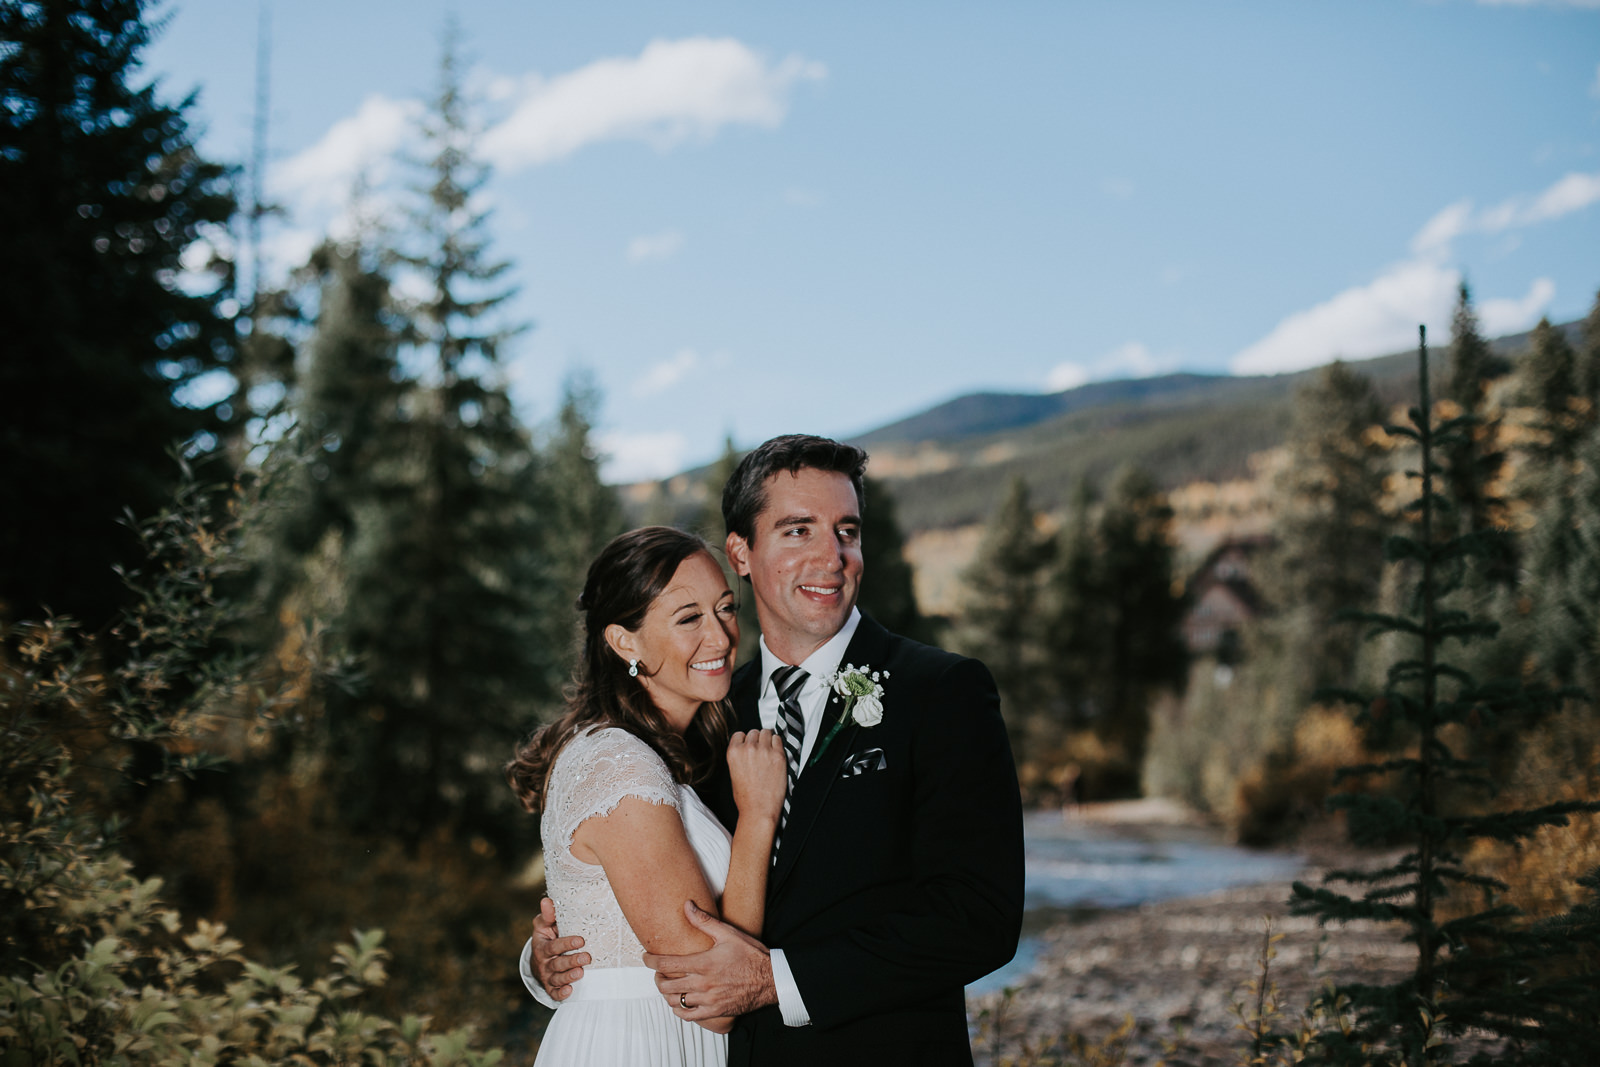 Quaking Aspen Amphitheater wedding pnotogtaphy with fall colors in Keystone Colorado